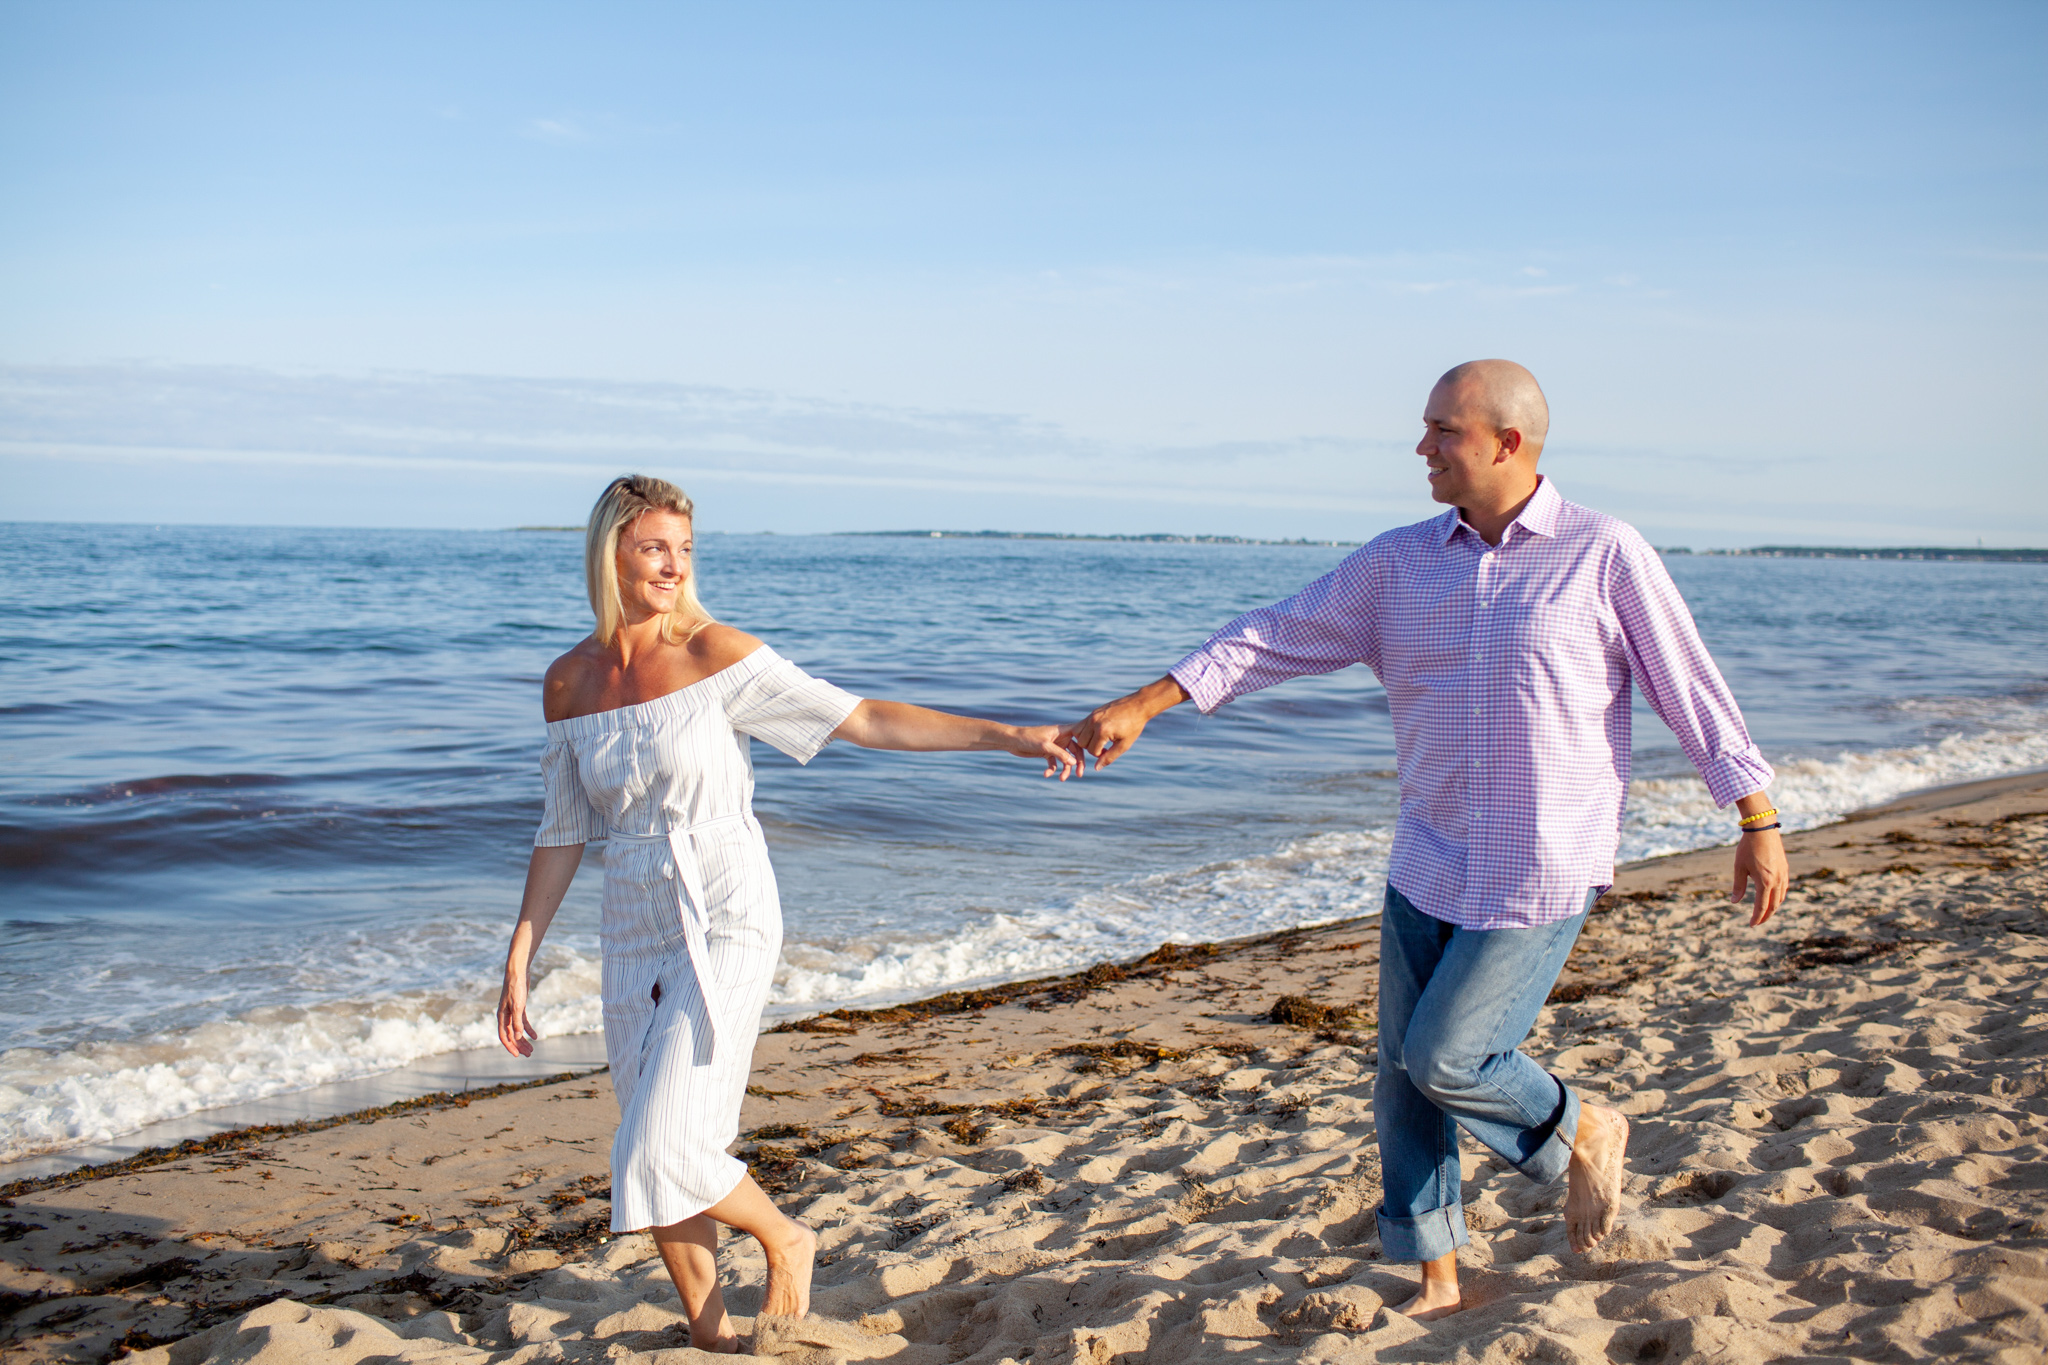 maine-beach-engagement-session-stepheneycollinsphotography-15.jpg